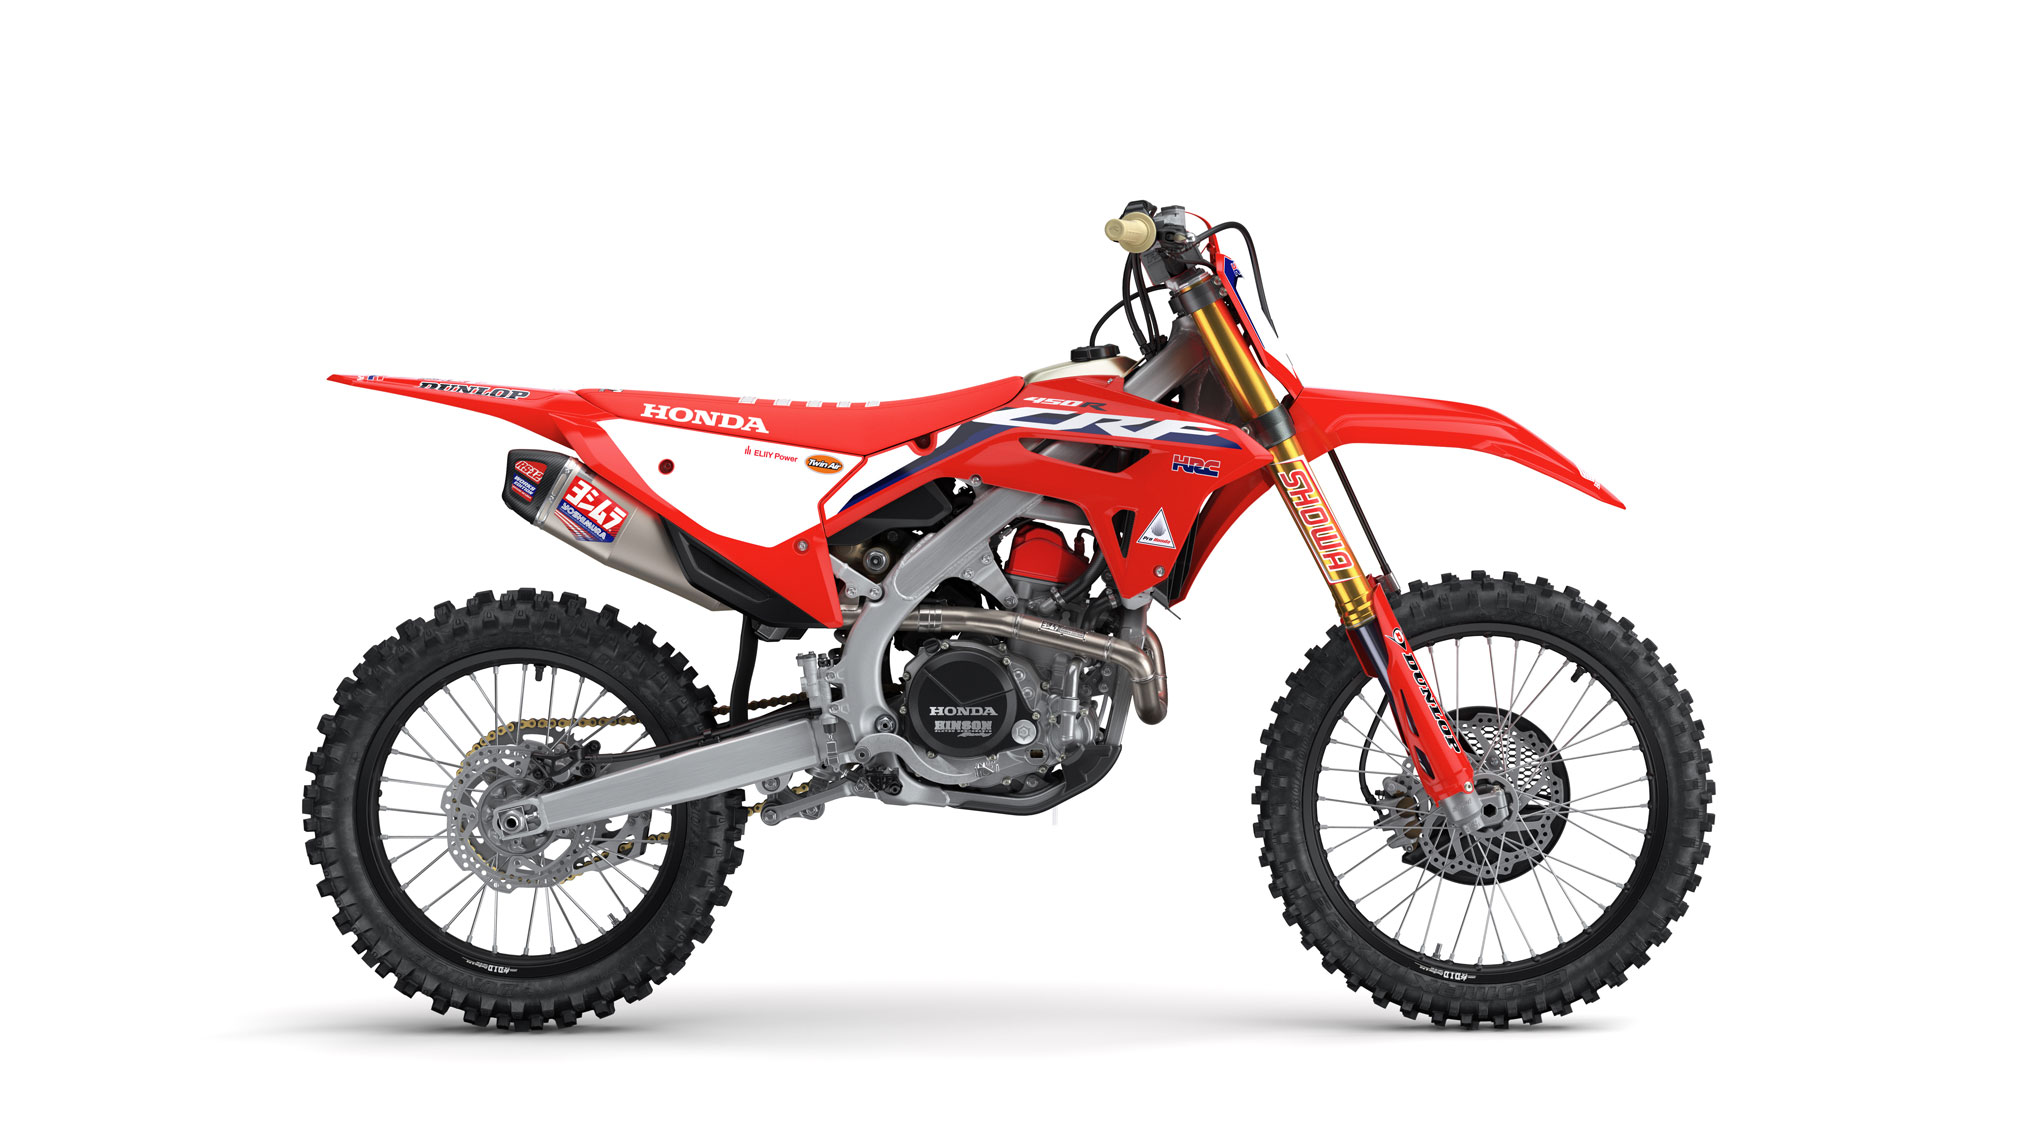 2021 honda crf450rwe guide • total motorcycle